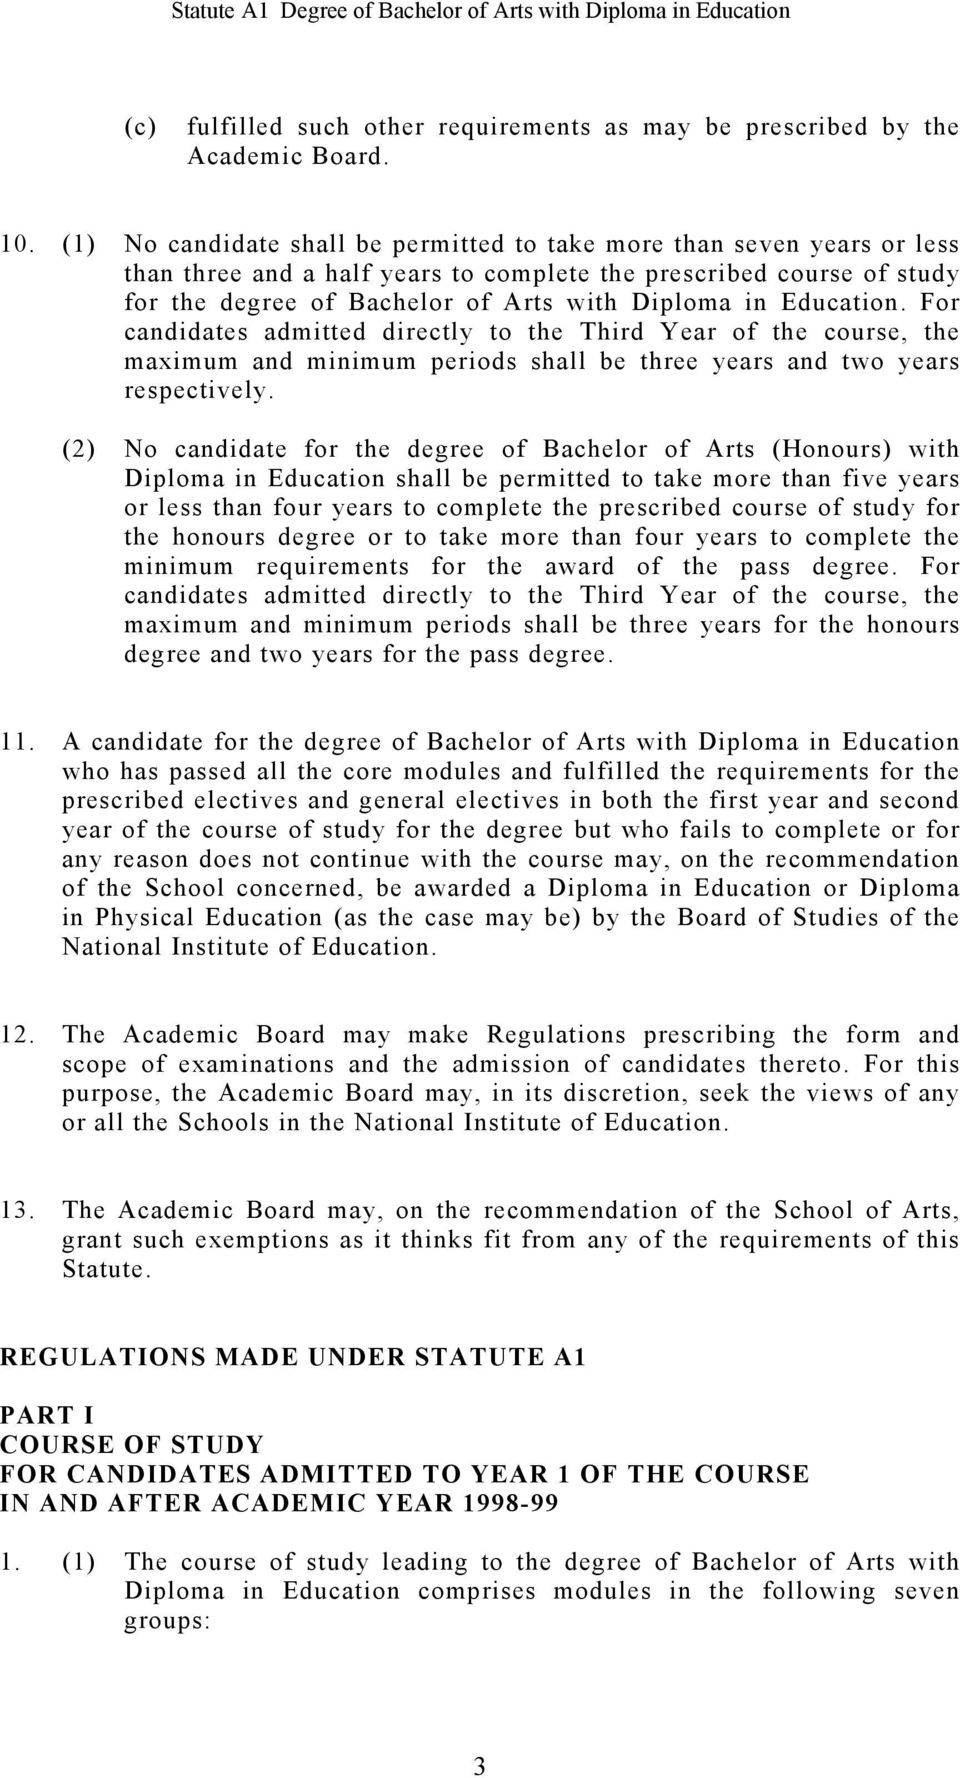 Education. For candidates admitted directly to the Third Year of the course, the maximum and minimum periods shall be three years and two years respectively.